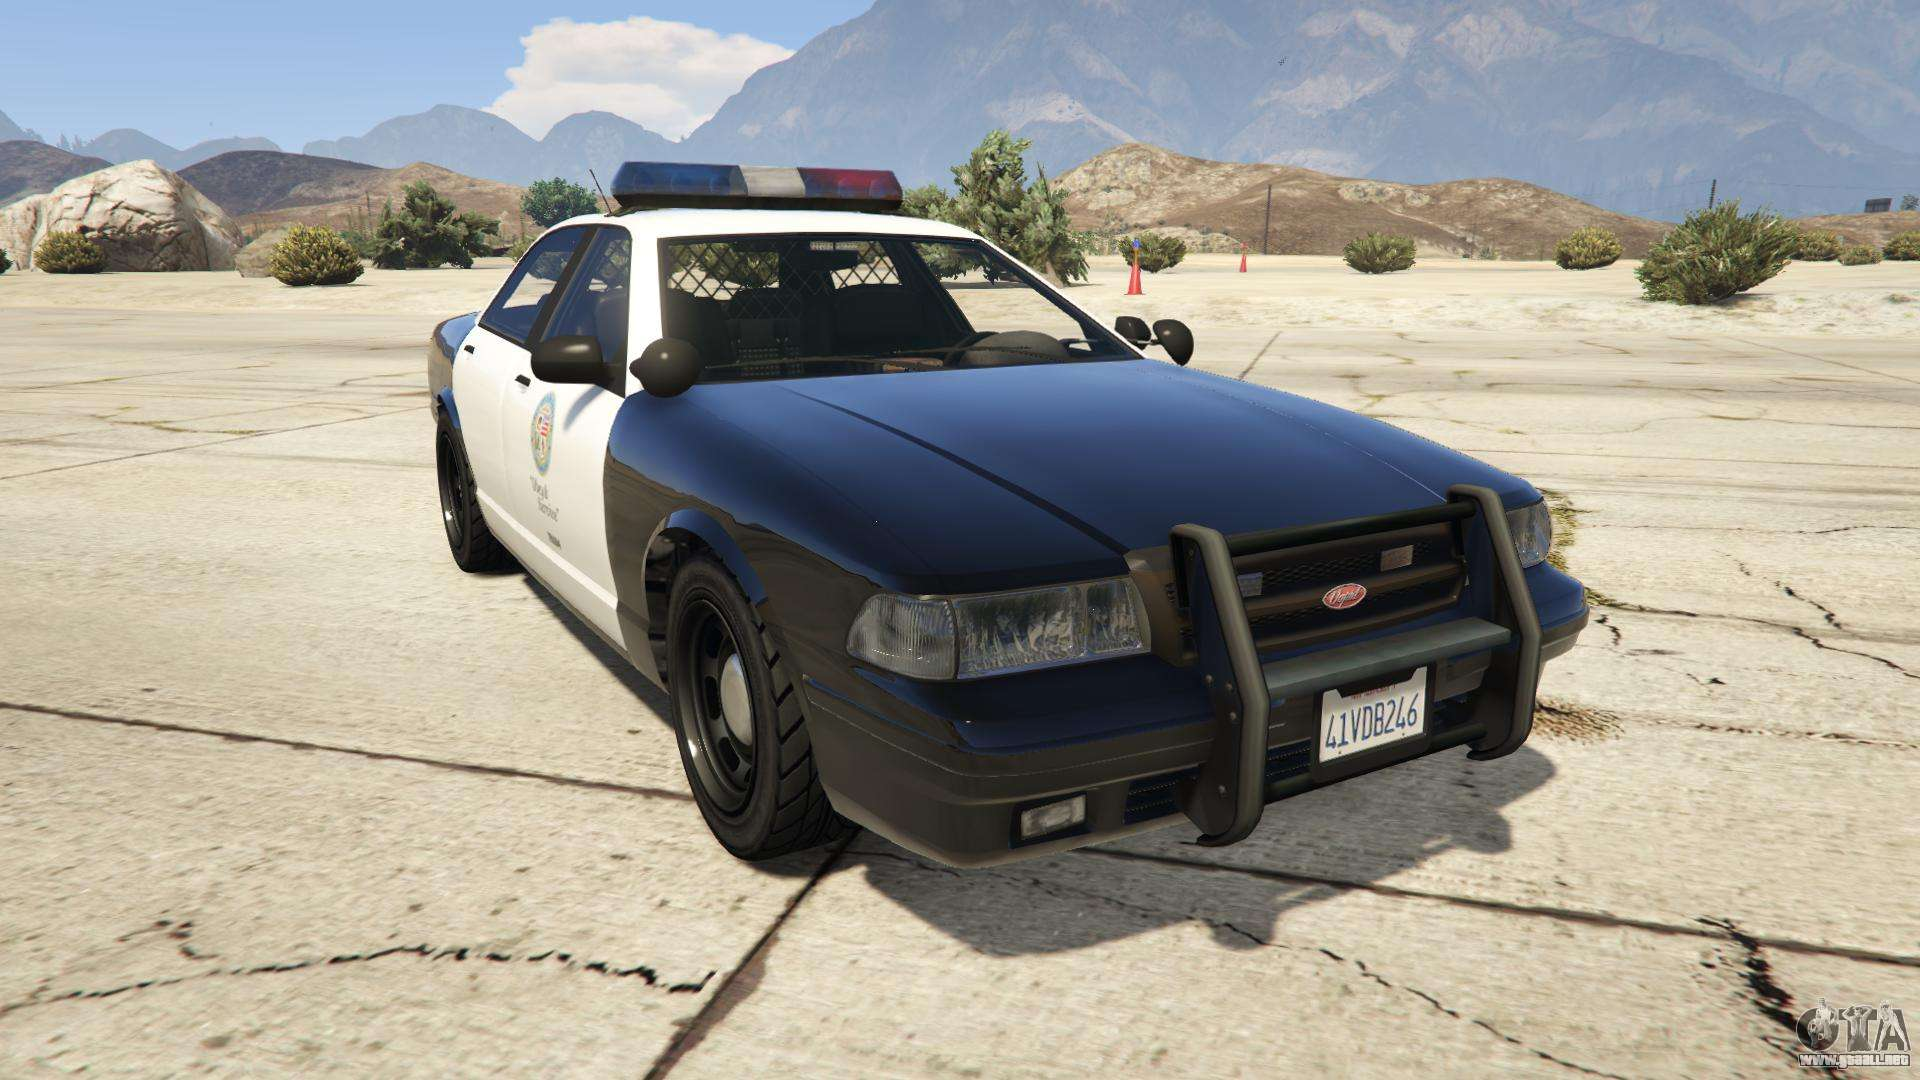 GTA 5 Vapid Police Cruiser - vista frontal